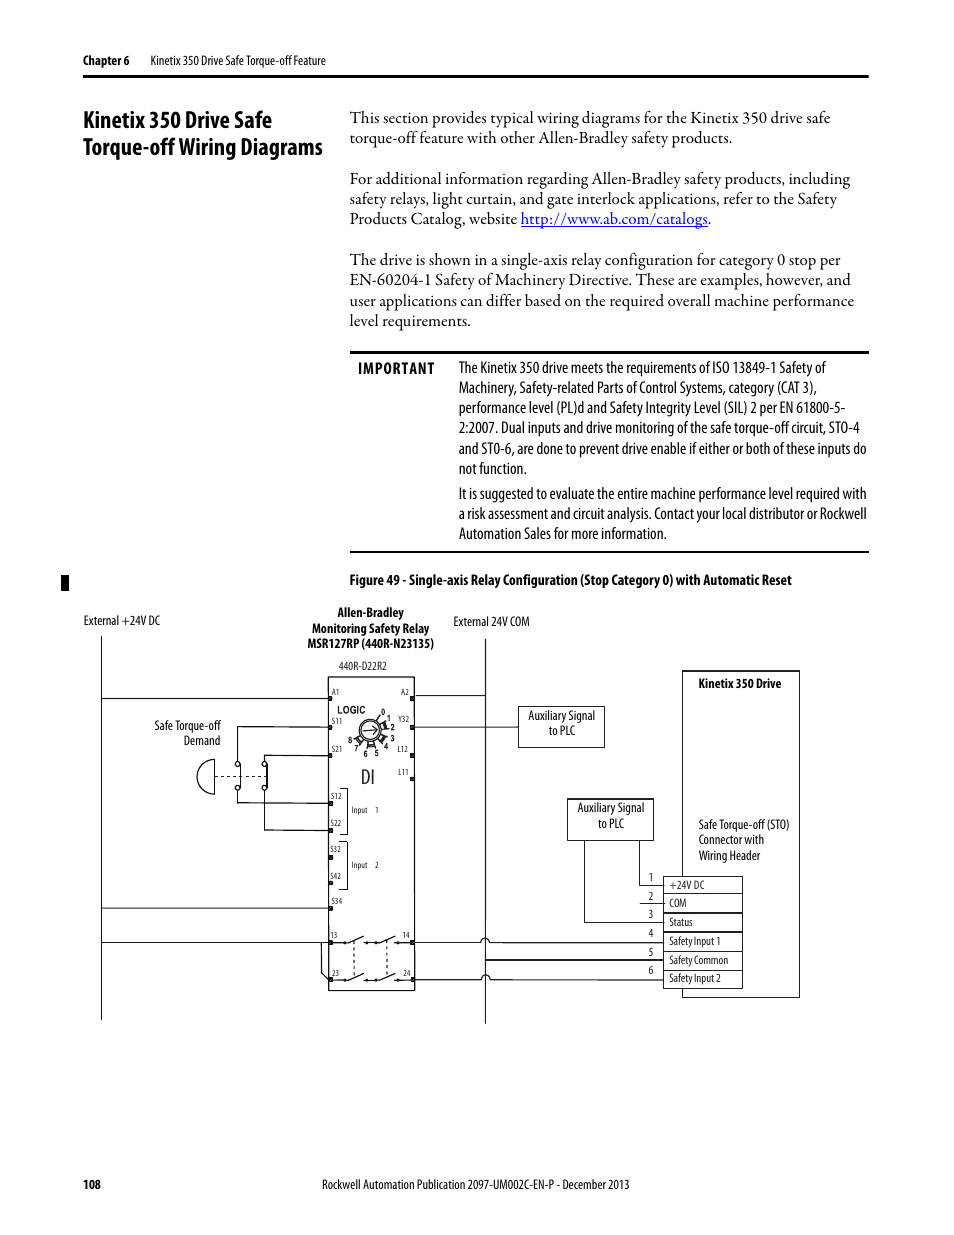 rockwell automation 2097 vxxx kinetix 350 single axis ethernet_ip servo drive user manual page108?resize\\\\\\\=665%2C861 axis lighting wiring diagrams wiring diagrams Basic Electrical Wiring Diagrams at bayanpartner.co